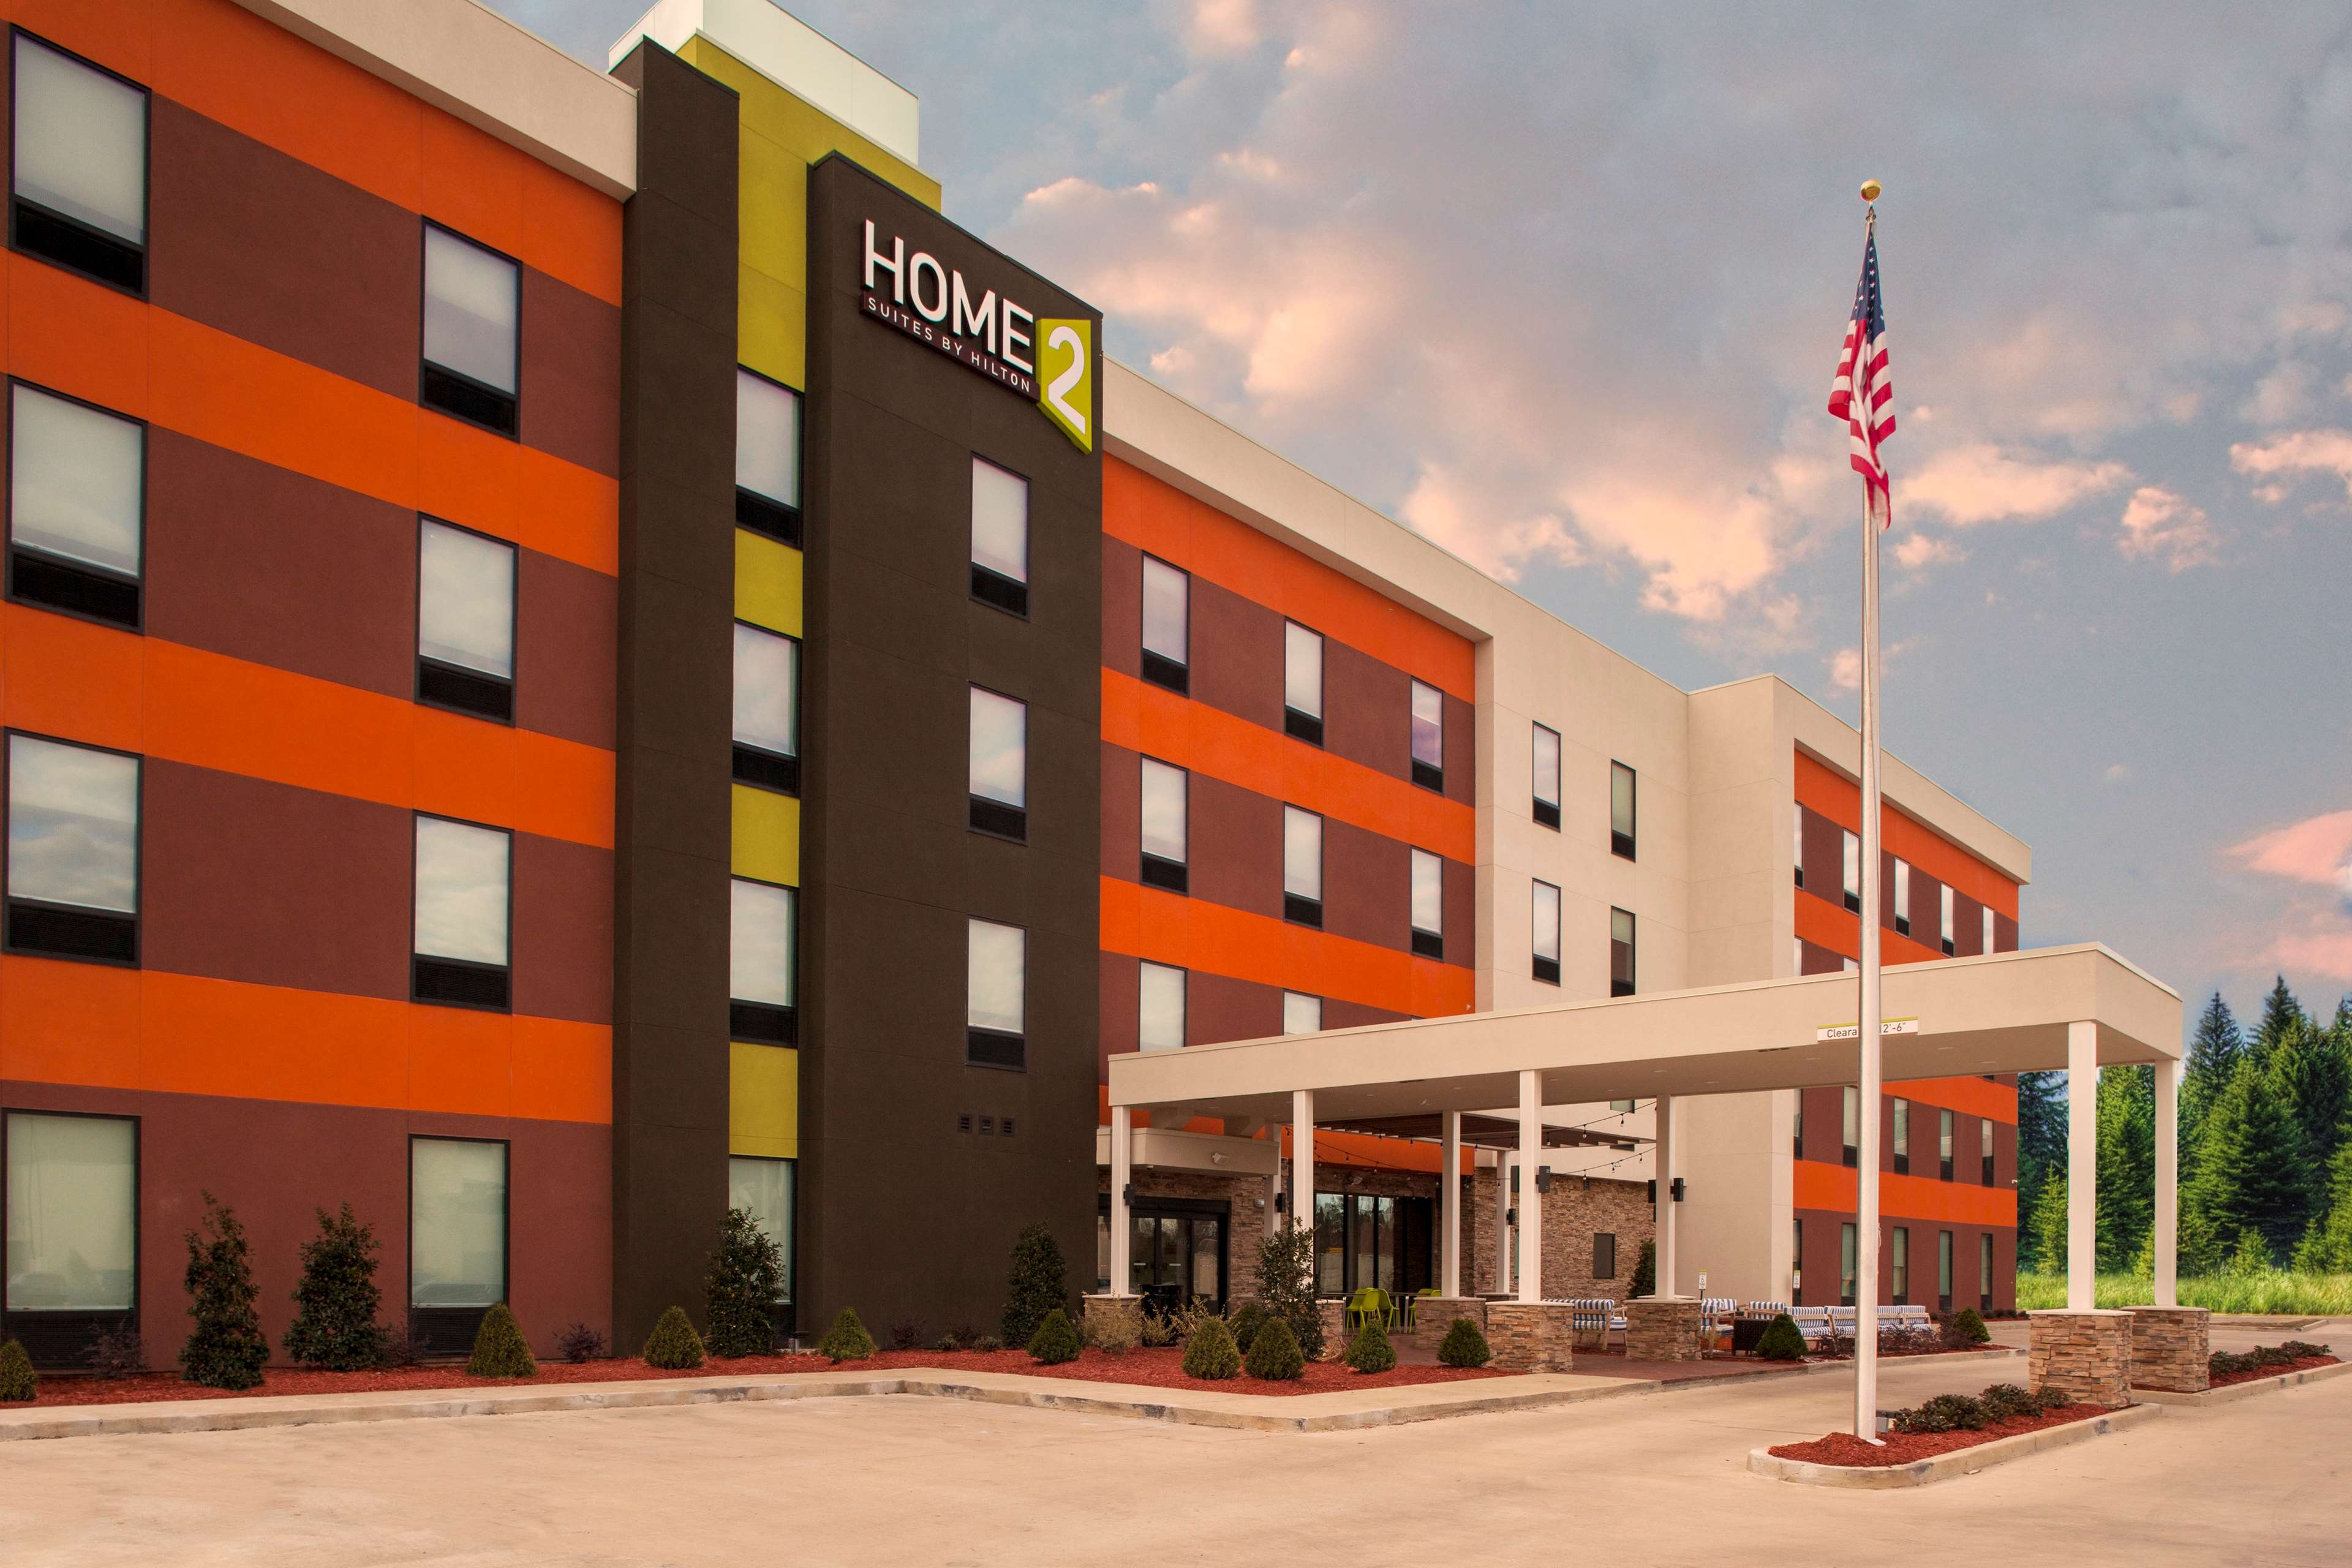 Home2 Suites by Hilton Lake Charles image 2